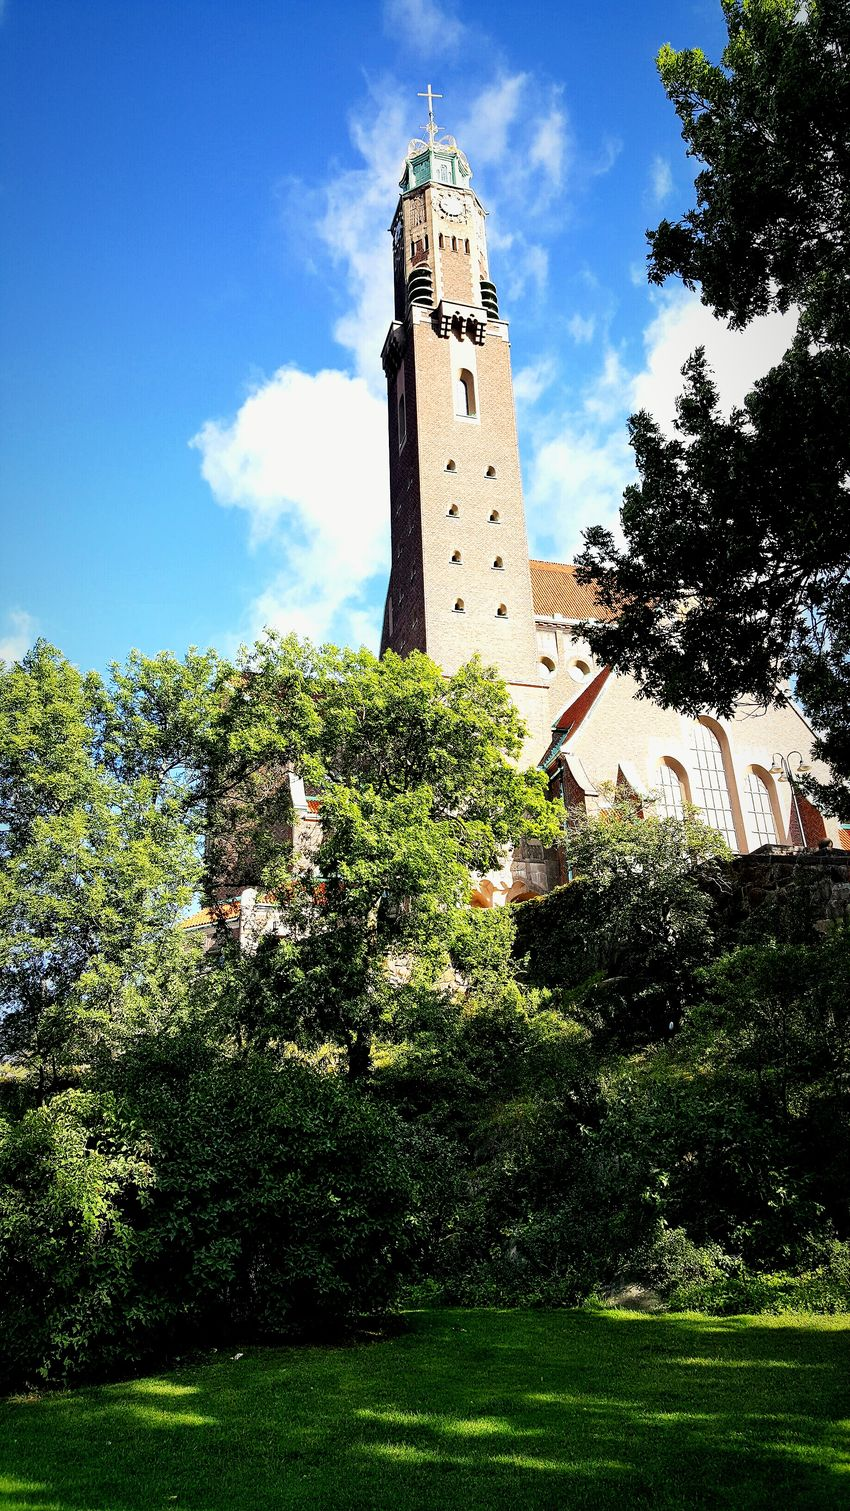 Stockholm Clock Tower Cloud - Sky Sky History Building Exterior Church Church Tower Grass Clouds Day Outdoors No People Old-fashioned Architecture Summer Built Structure Trees Brick Church Brick Building